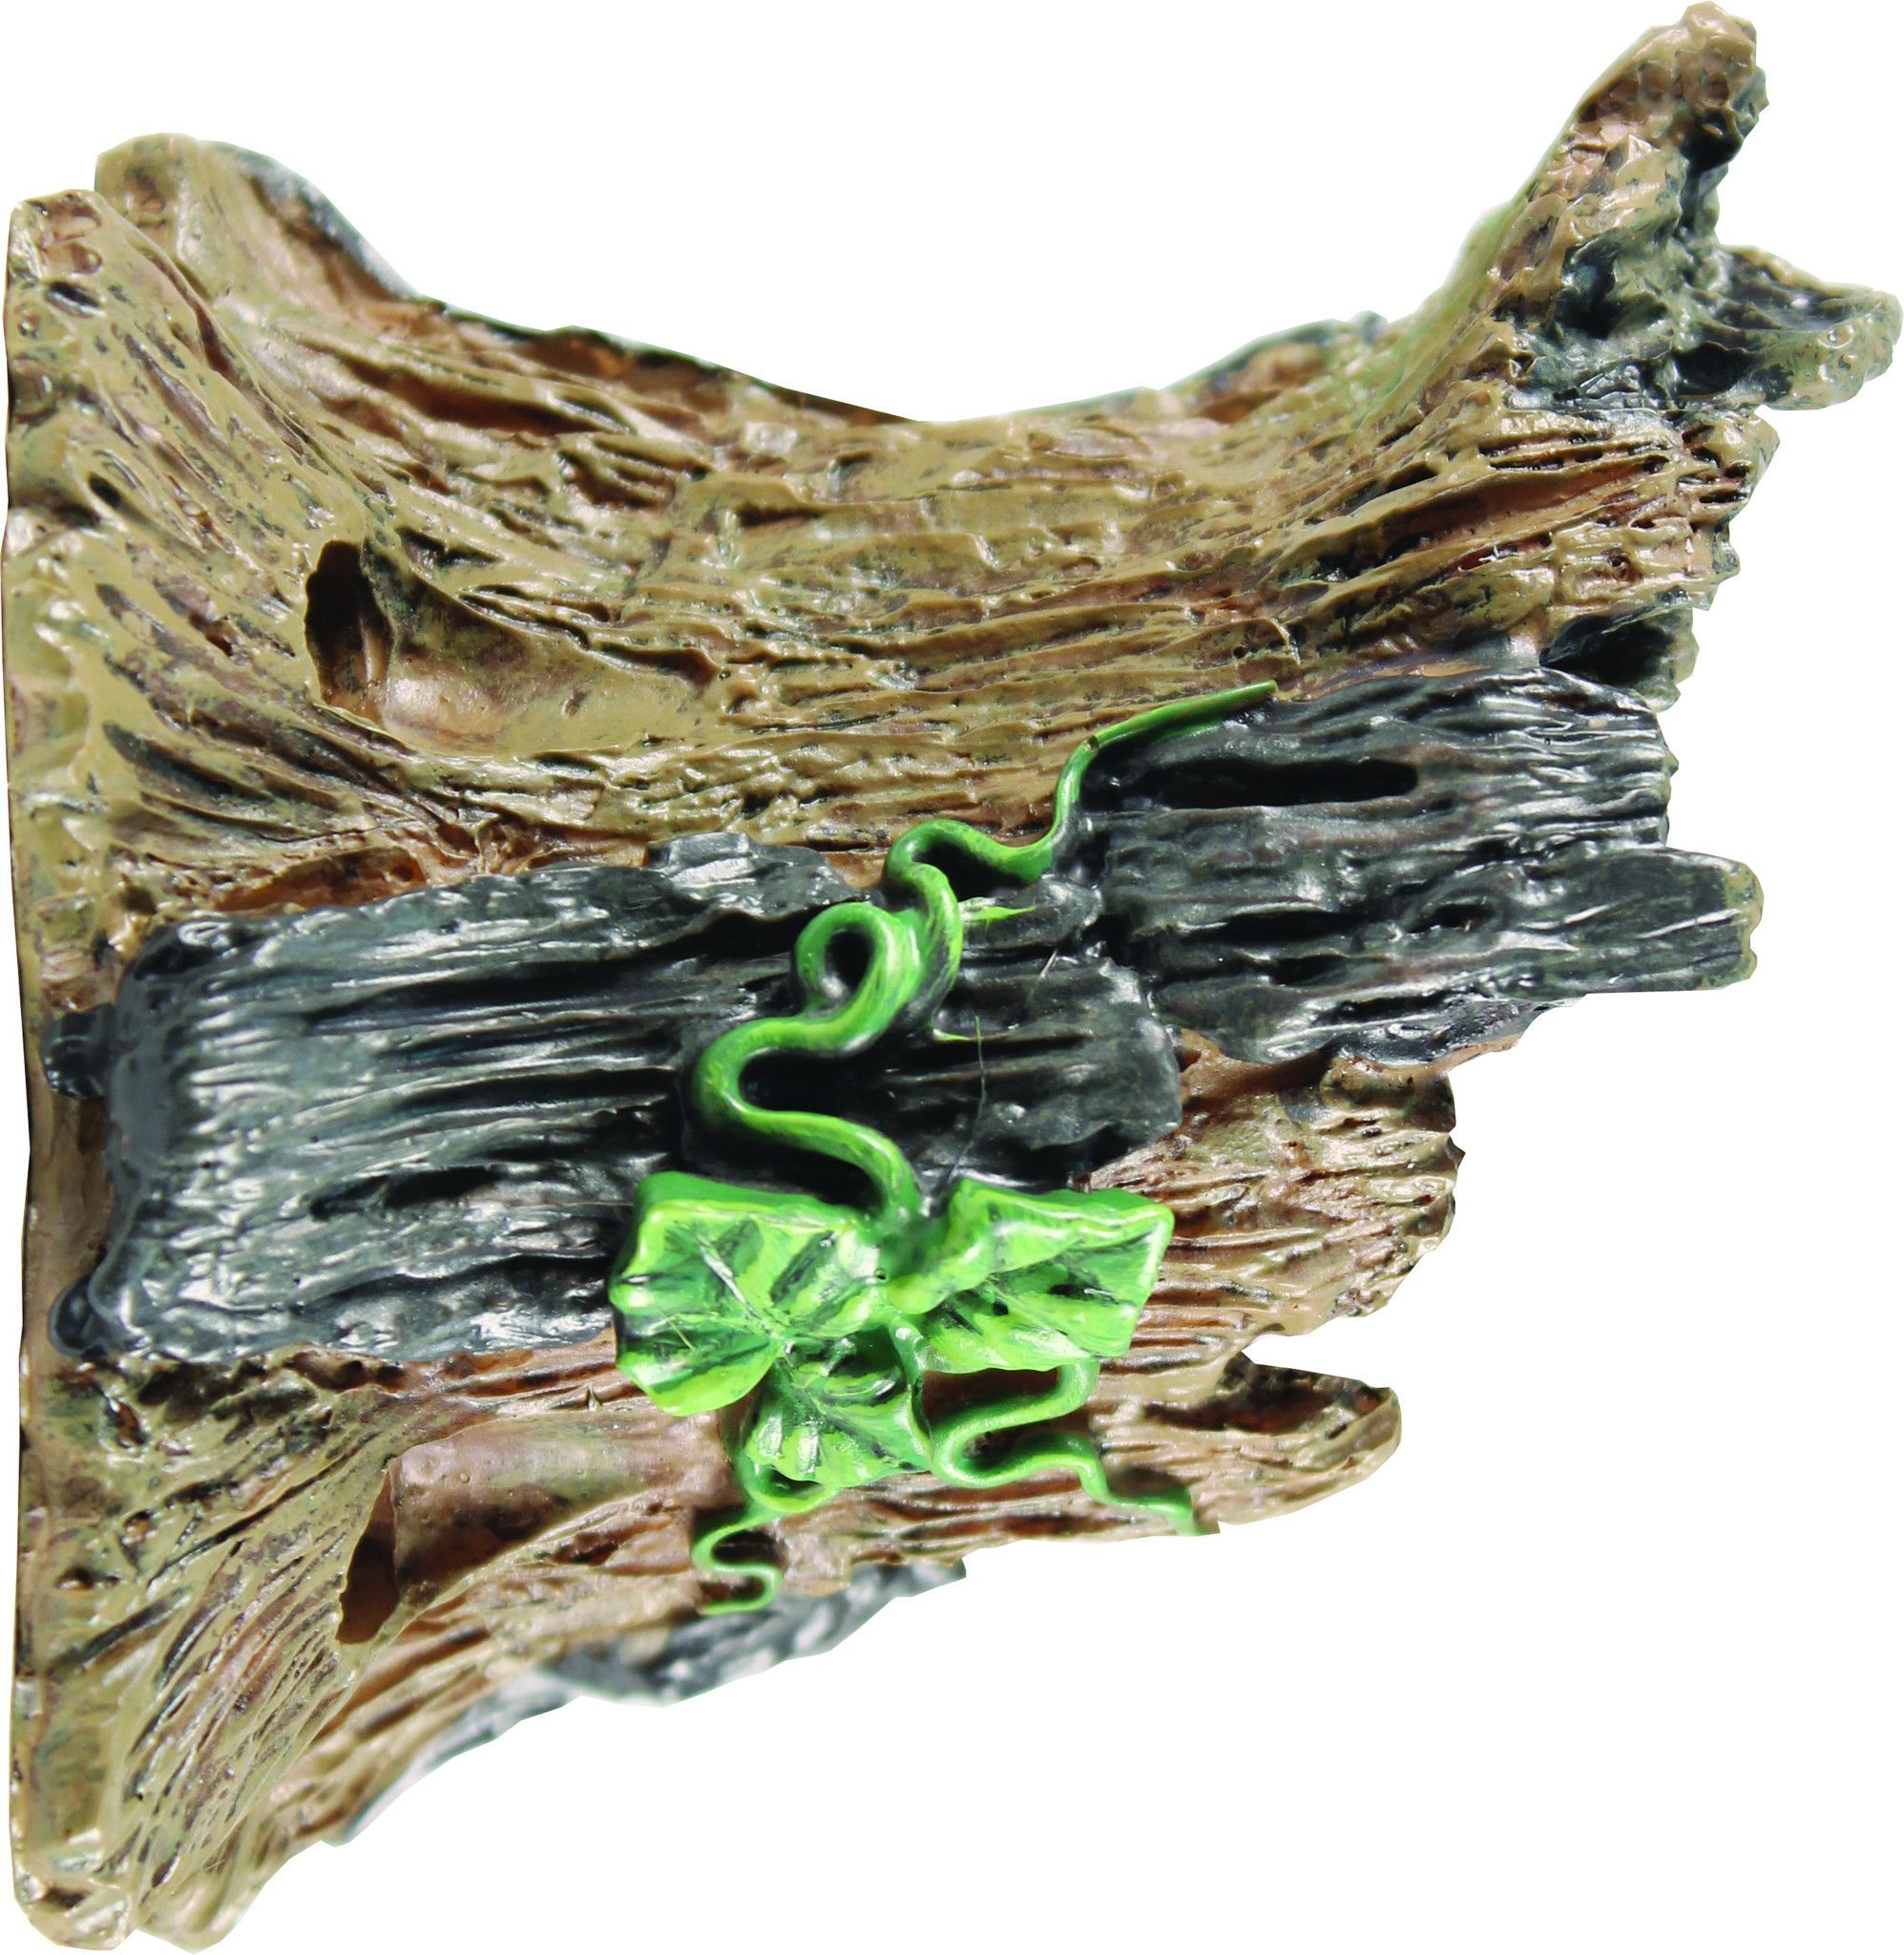 THE NATURAL BIRD GUARDIAN BIRDHOUSE PROTECTOR